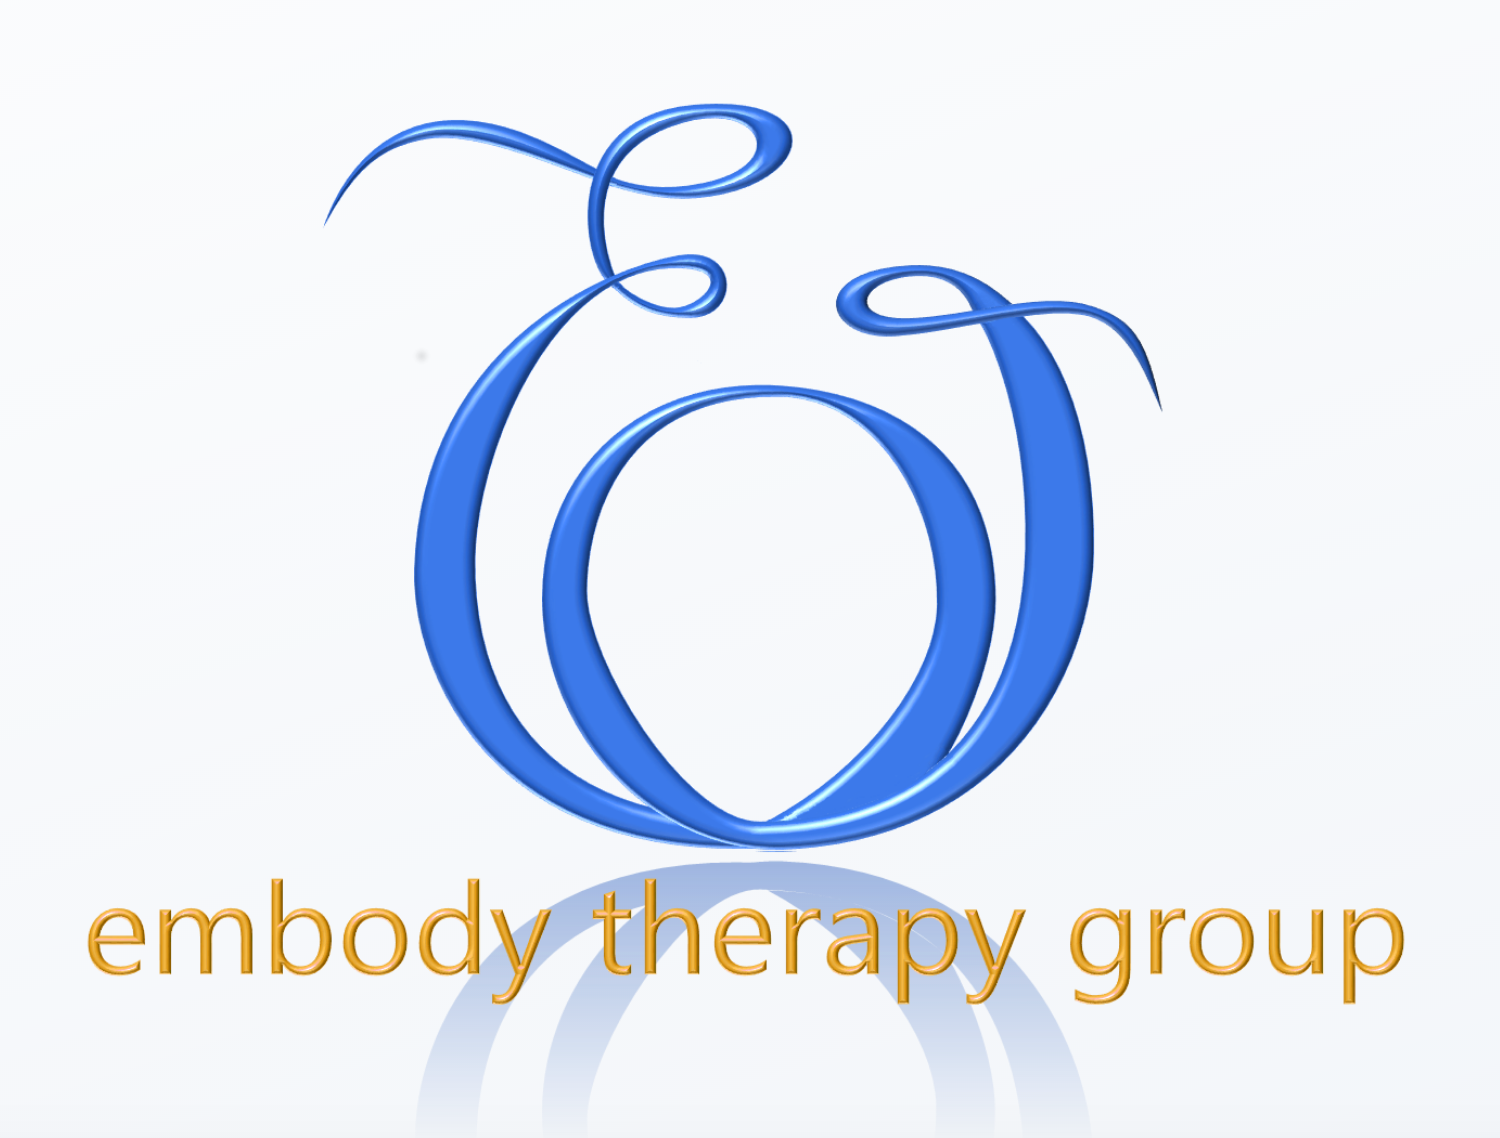 Embody Therapy Group